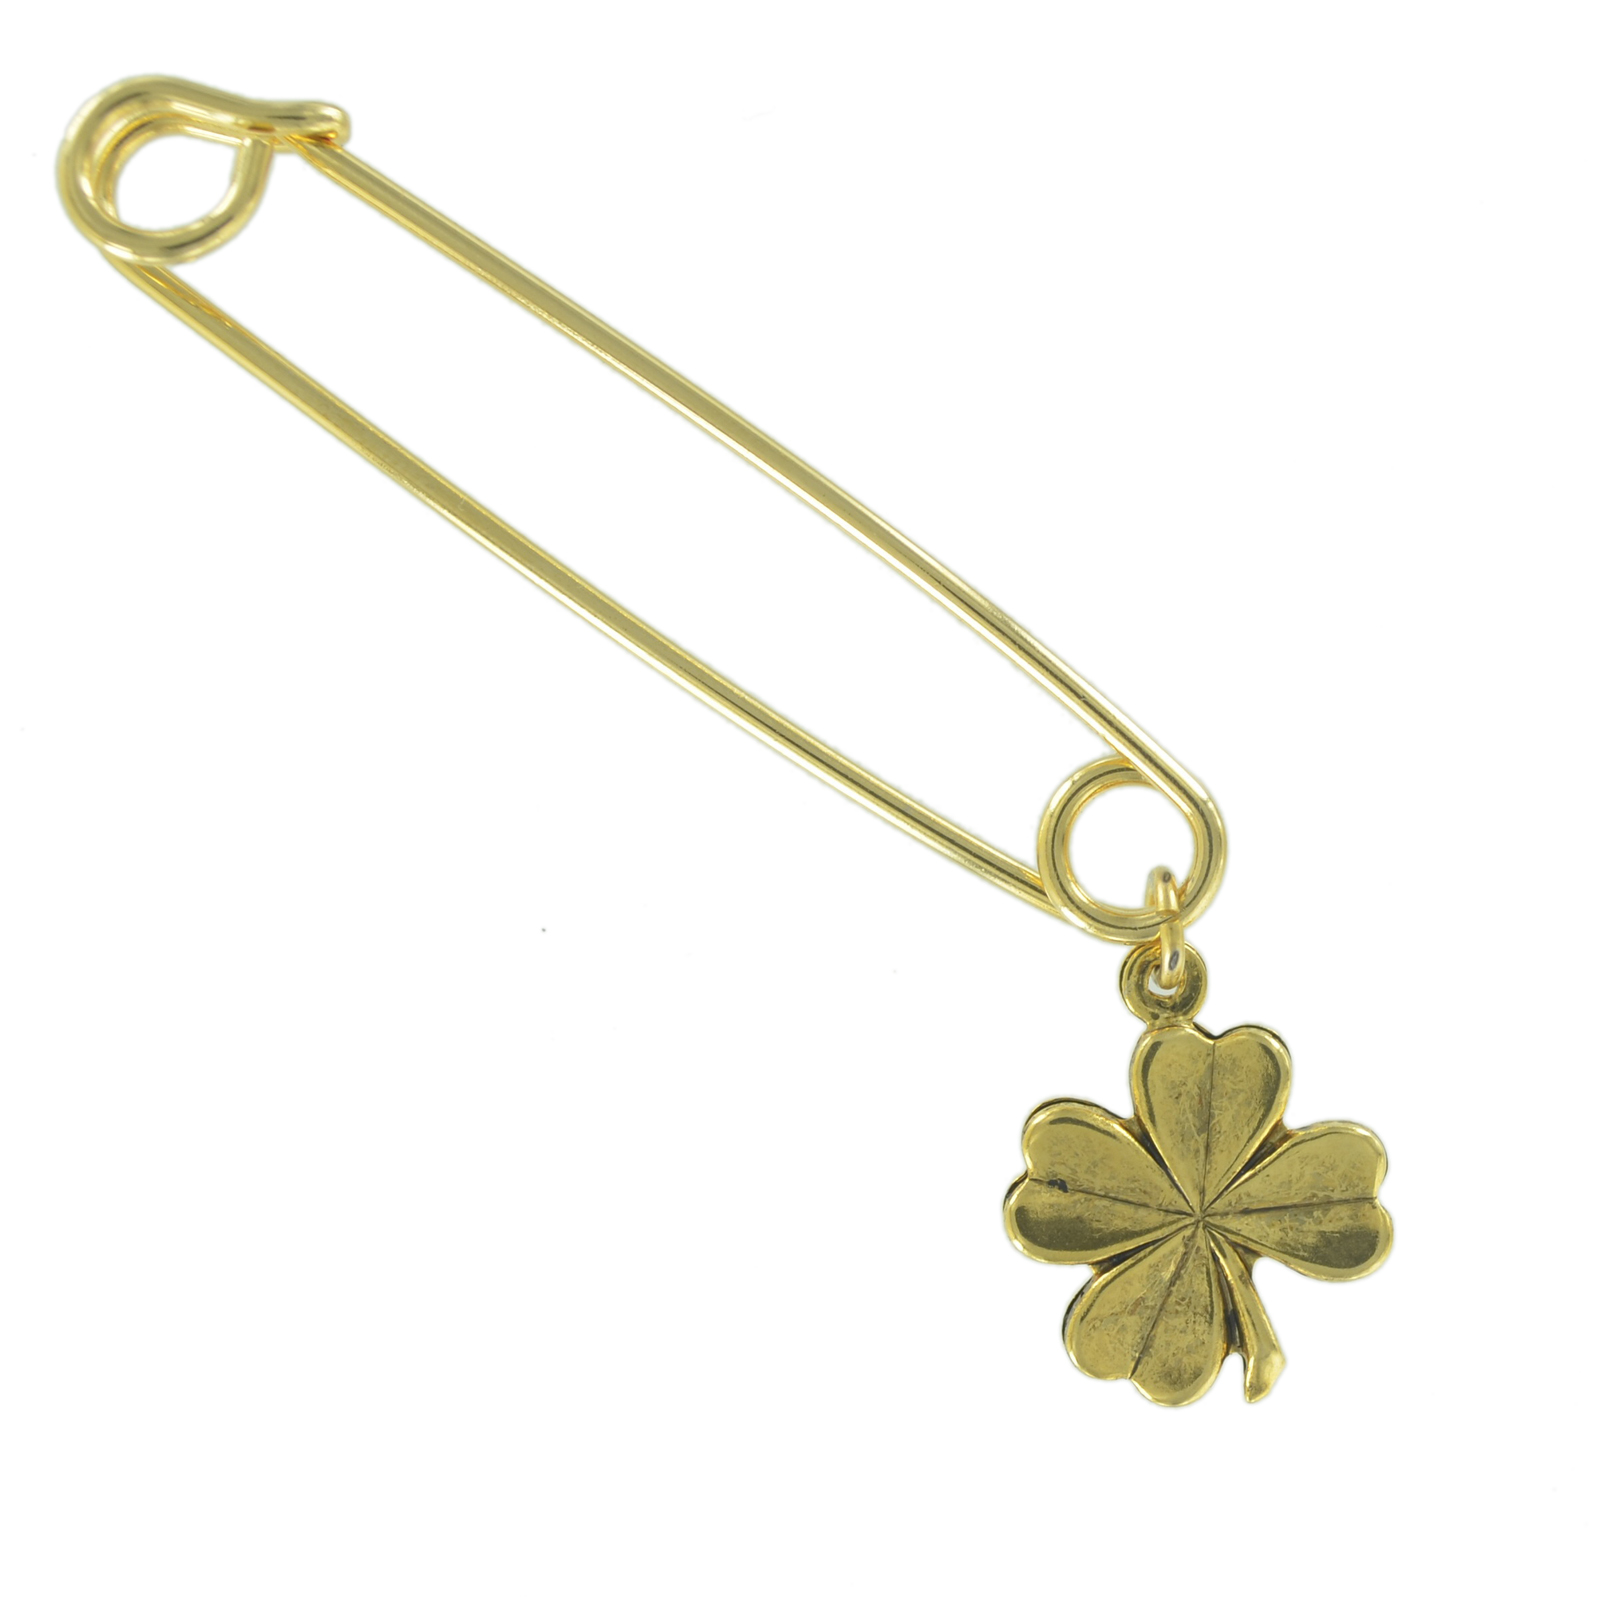 """Safety Pin Brooch 2"""" Gold Tone Four Leaf Clover Good Luck Irish Symbol Charm Dangle End by Ky & Co"""